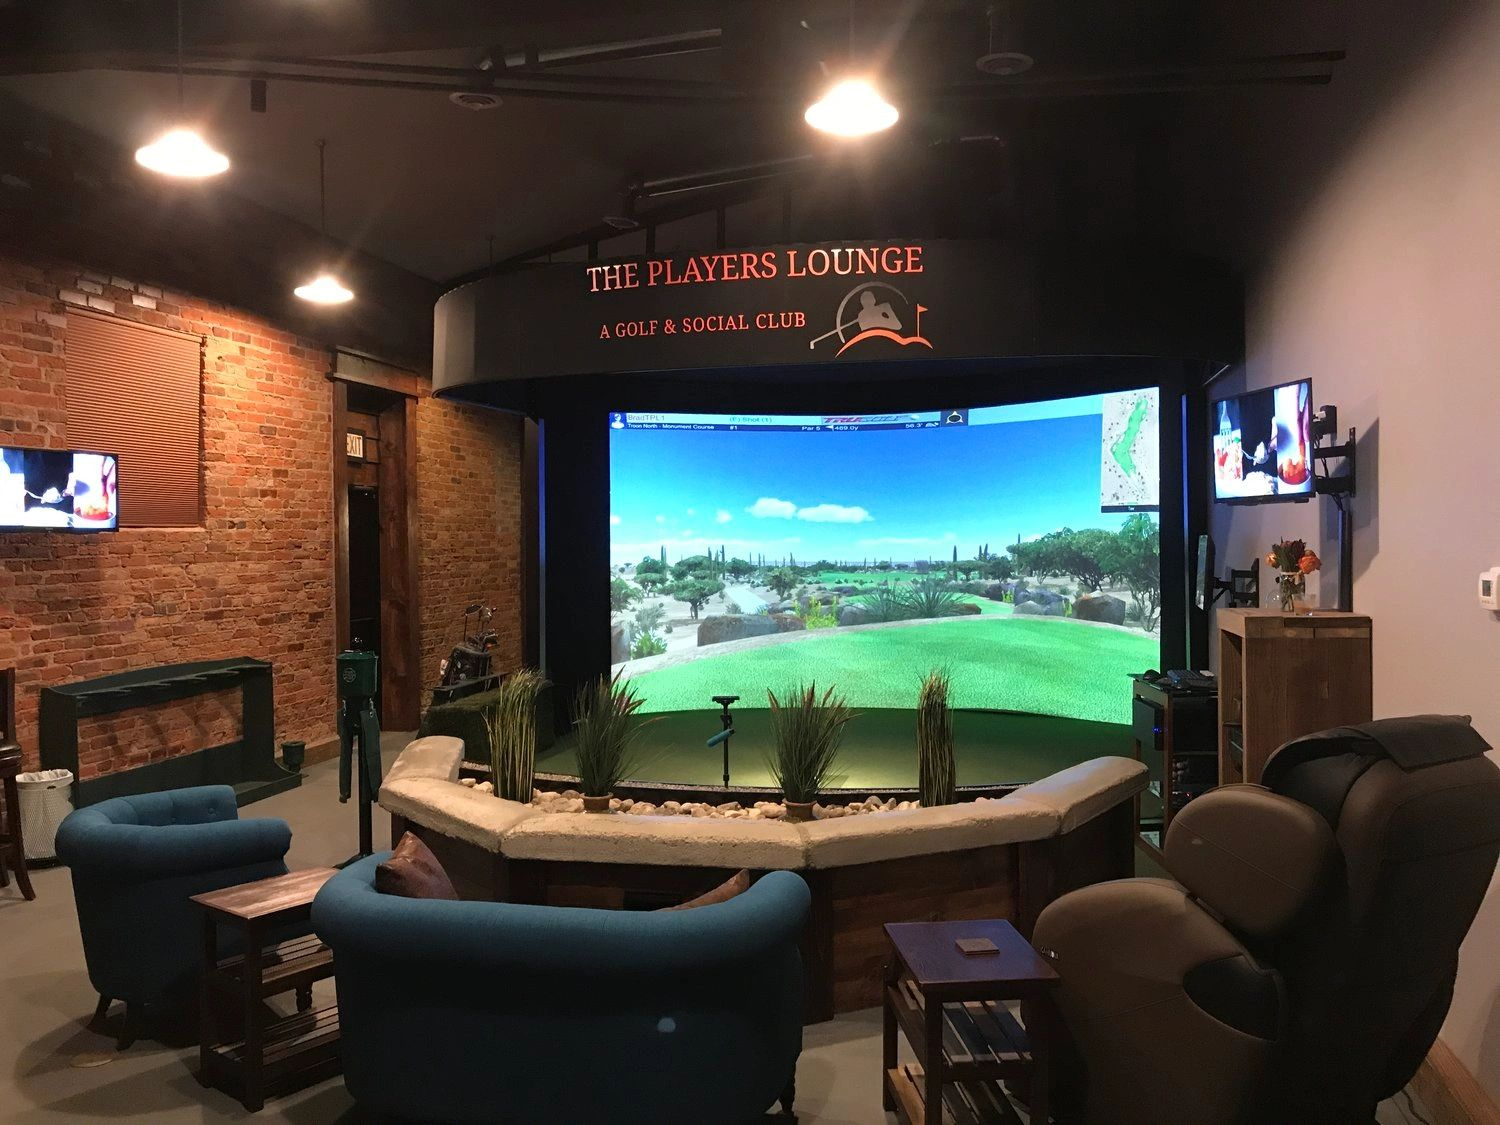 The Players Lounge Cheyenne, WY. A golf and social club in downtown Cheyenne, WY. Great for meetings